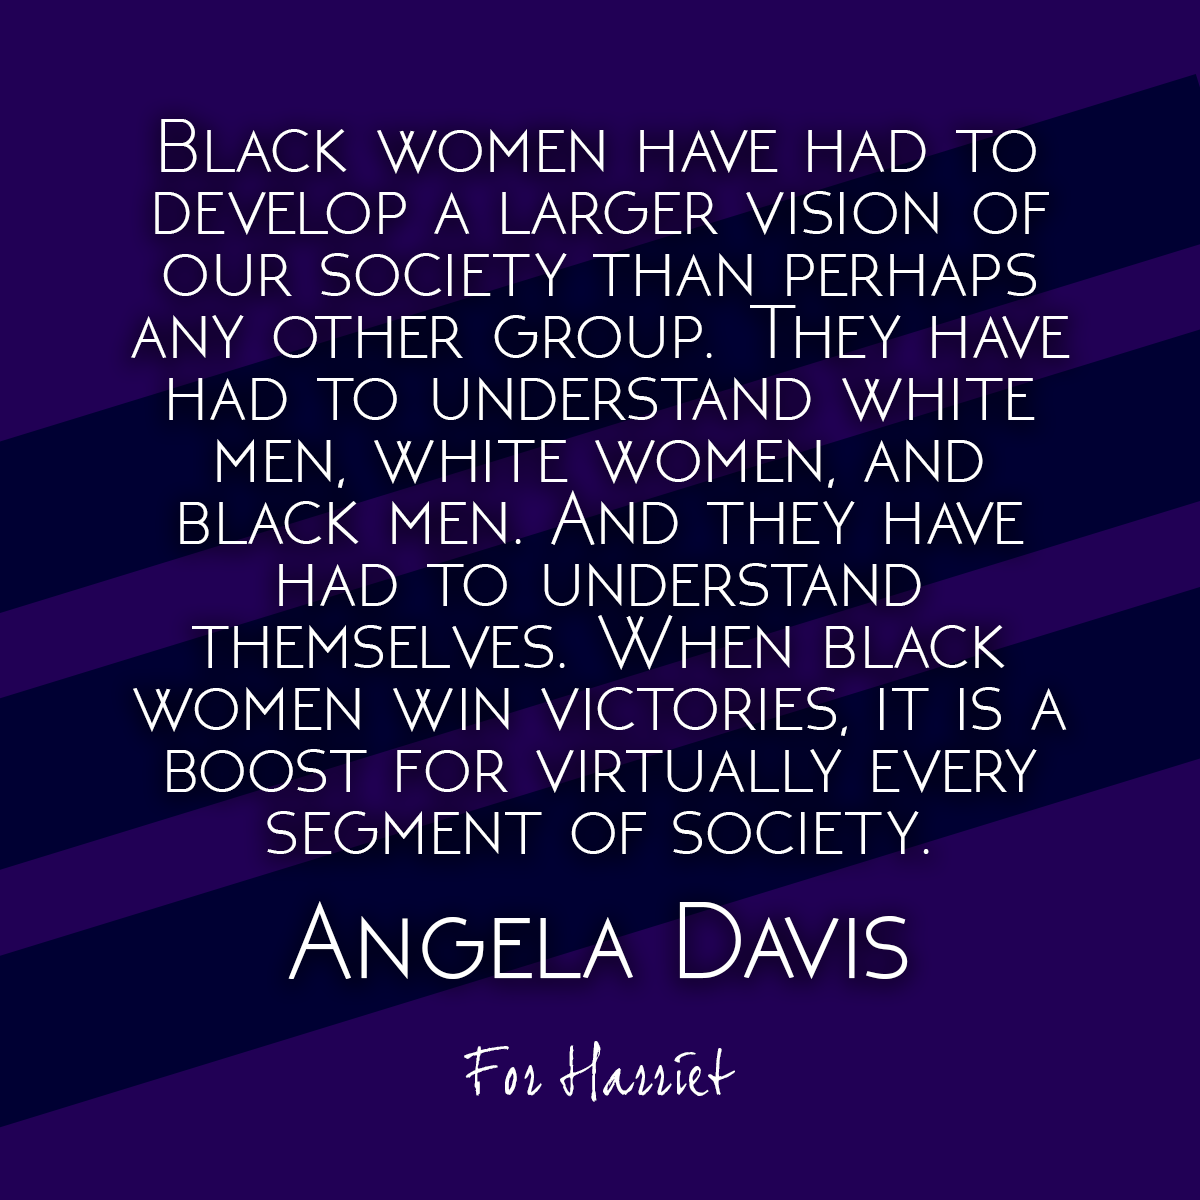 Quotes About Men And Women 20 Quotes From Angela Davis That Inspire Us To Keep Up The Fight